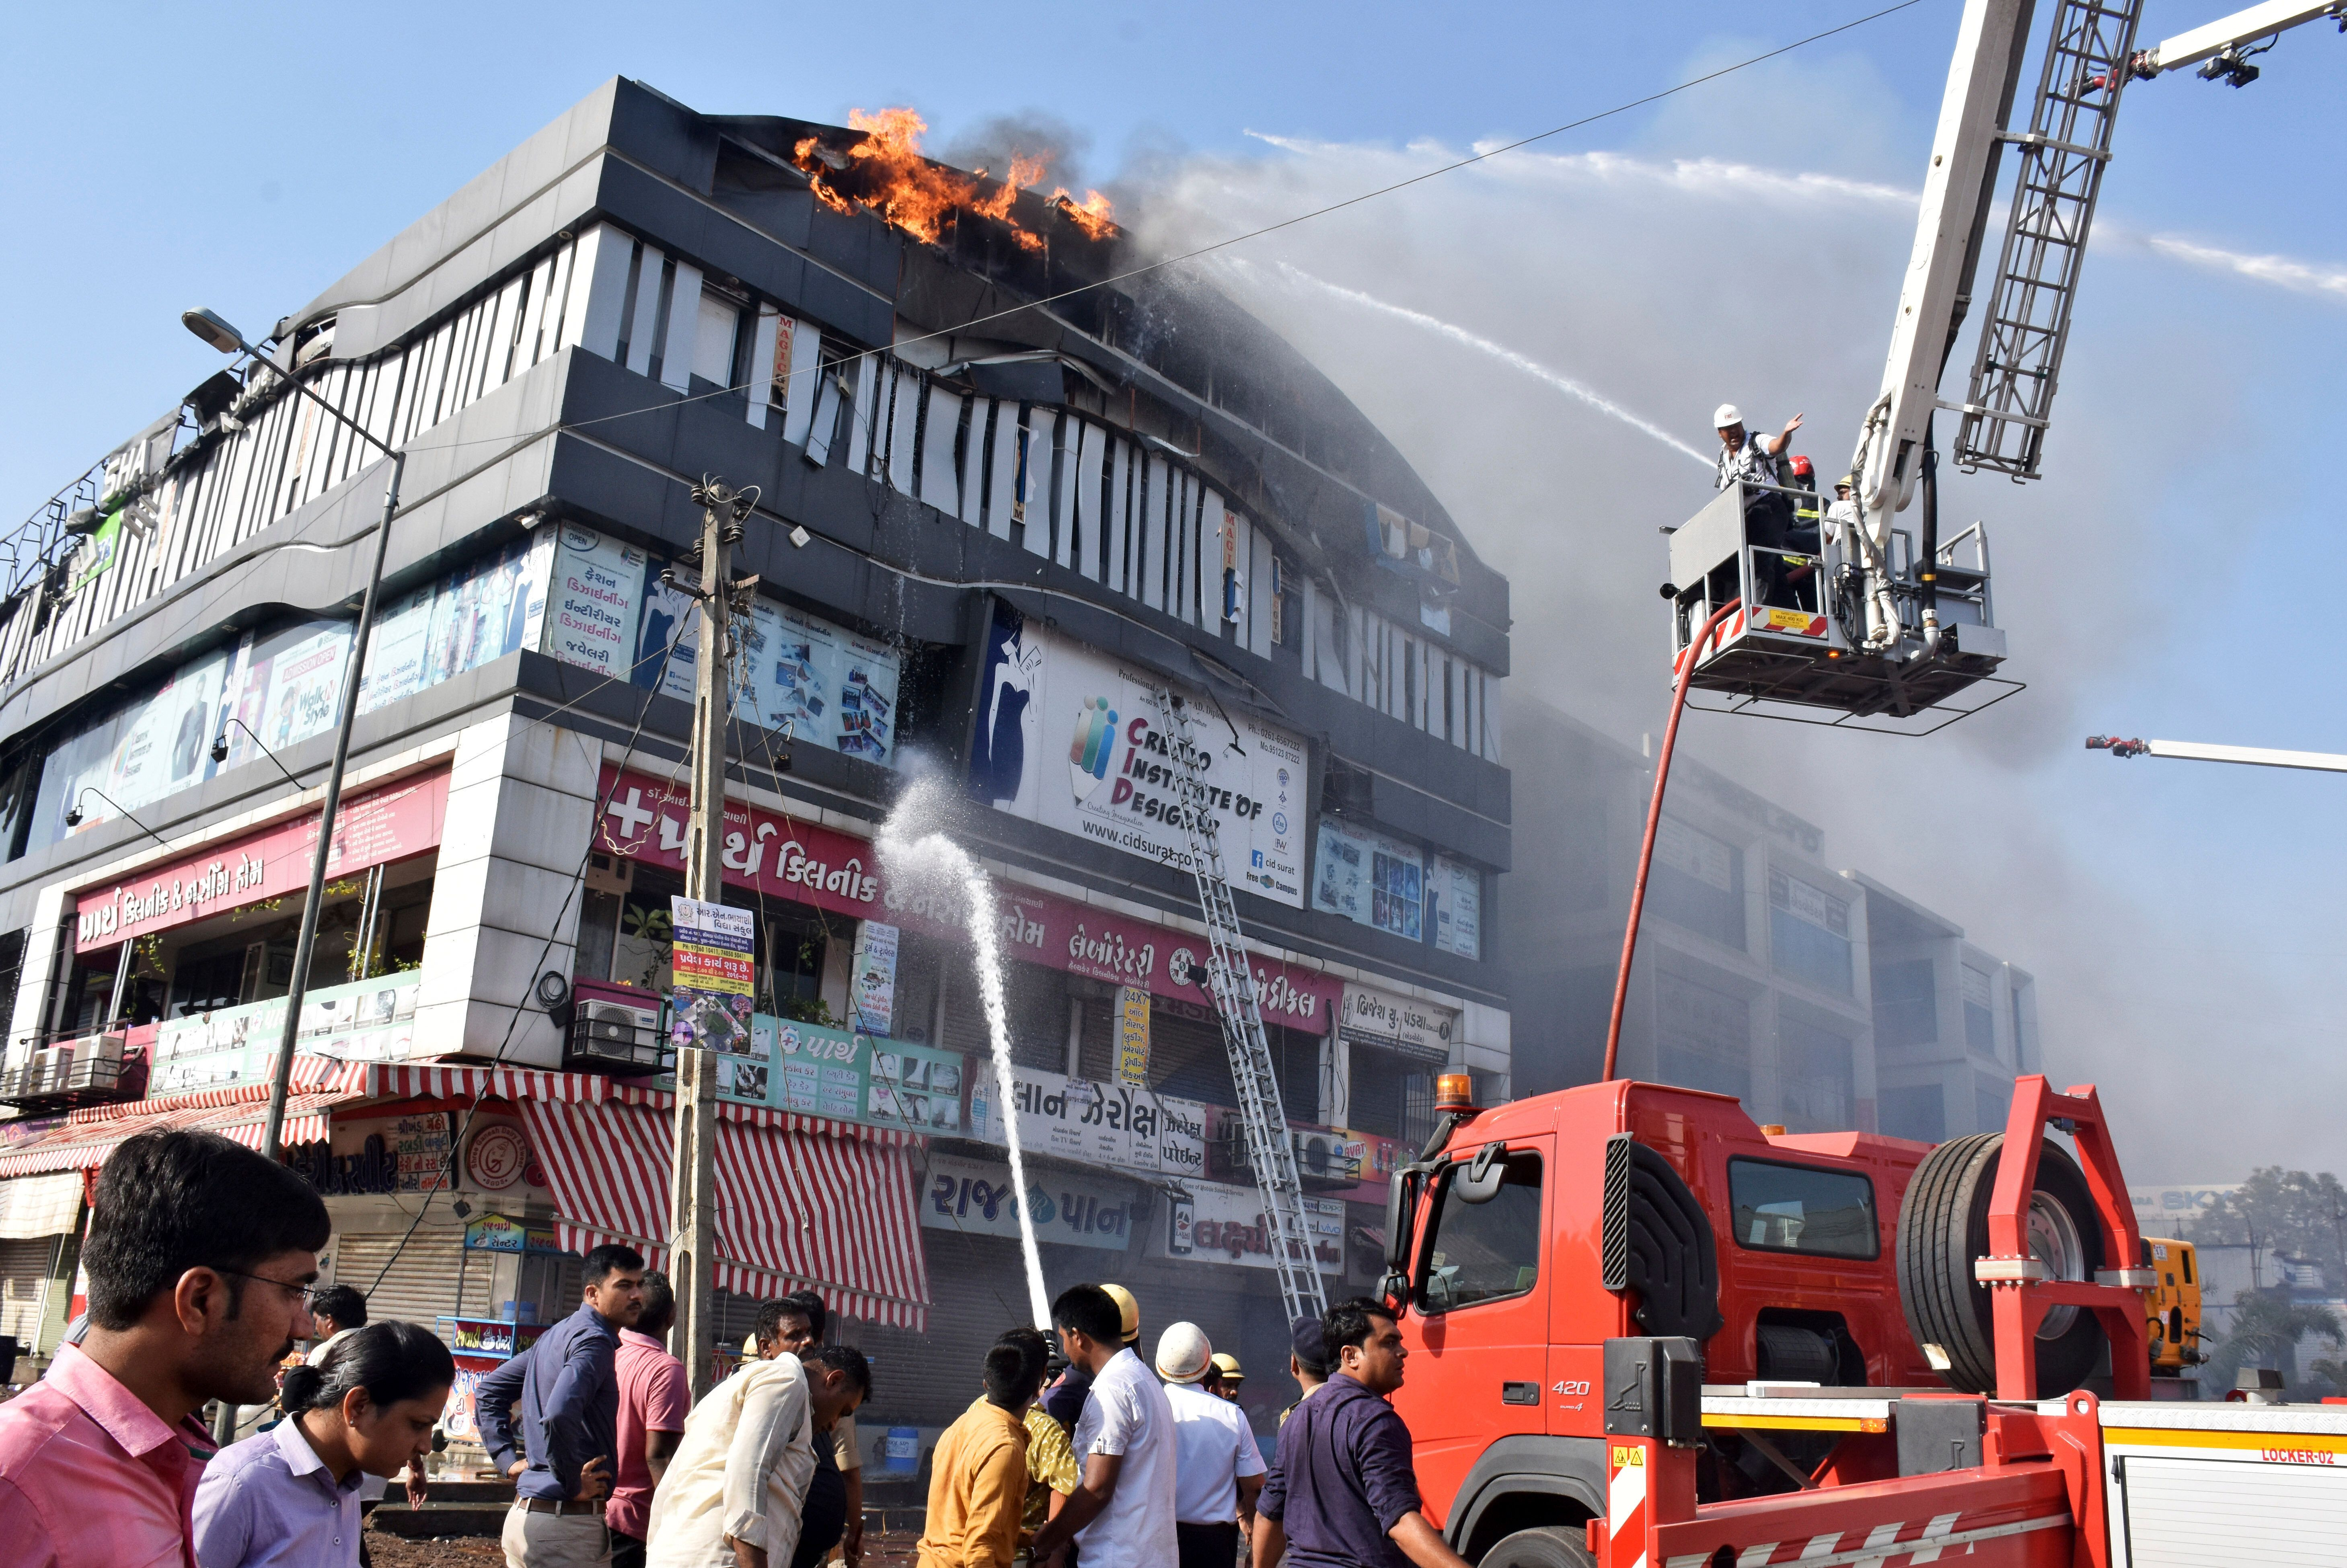 15 Students Die In Fire At Commercial Complex In Surat, PM Modi Expresses